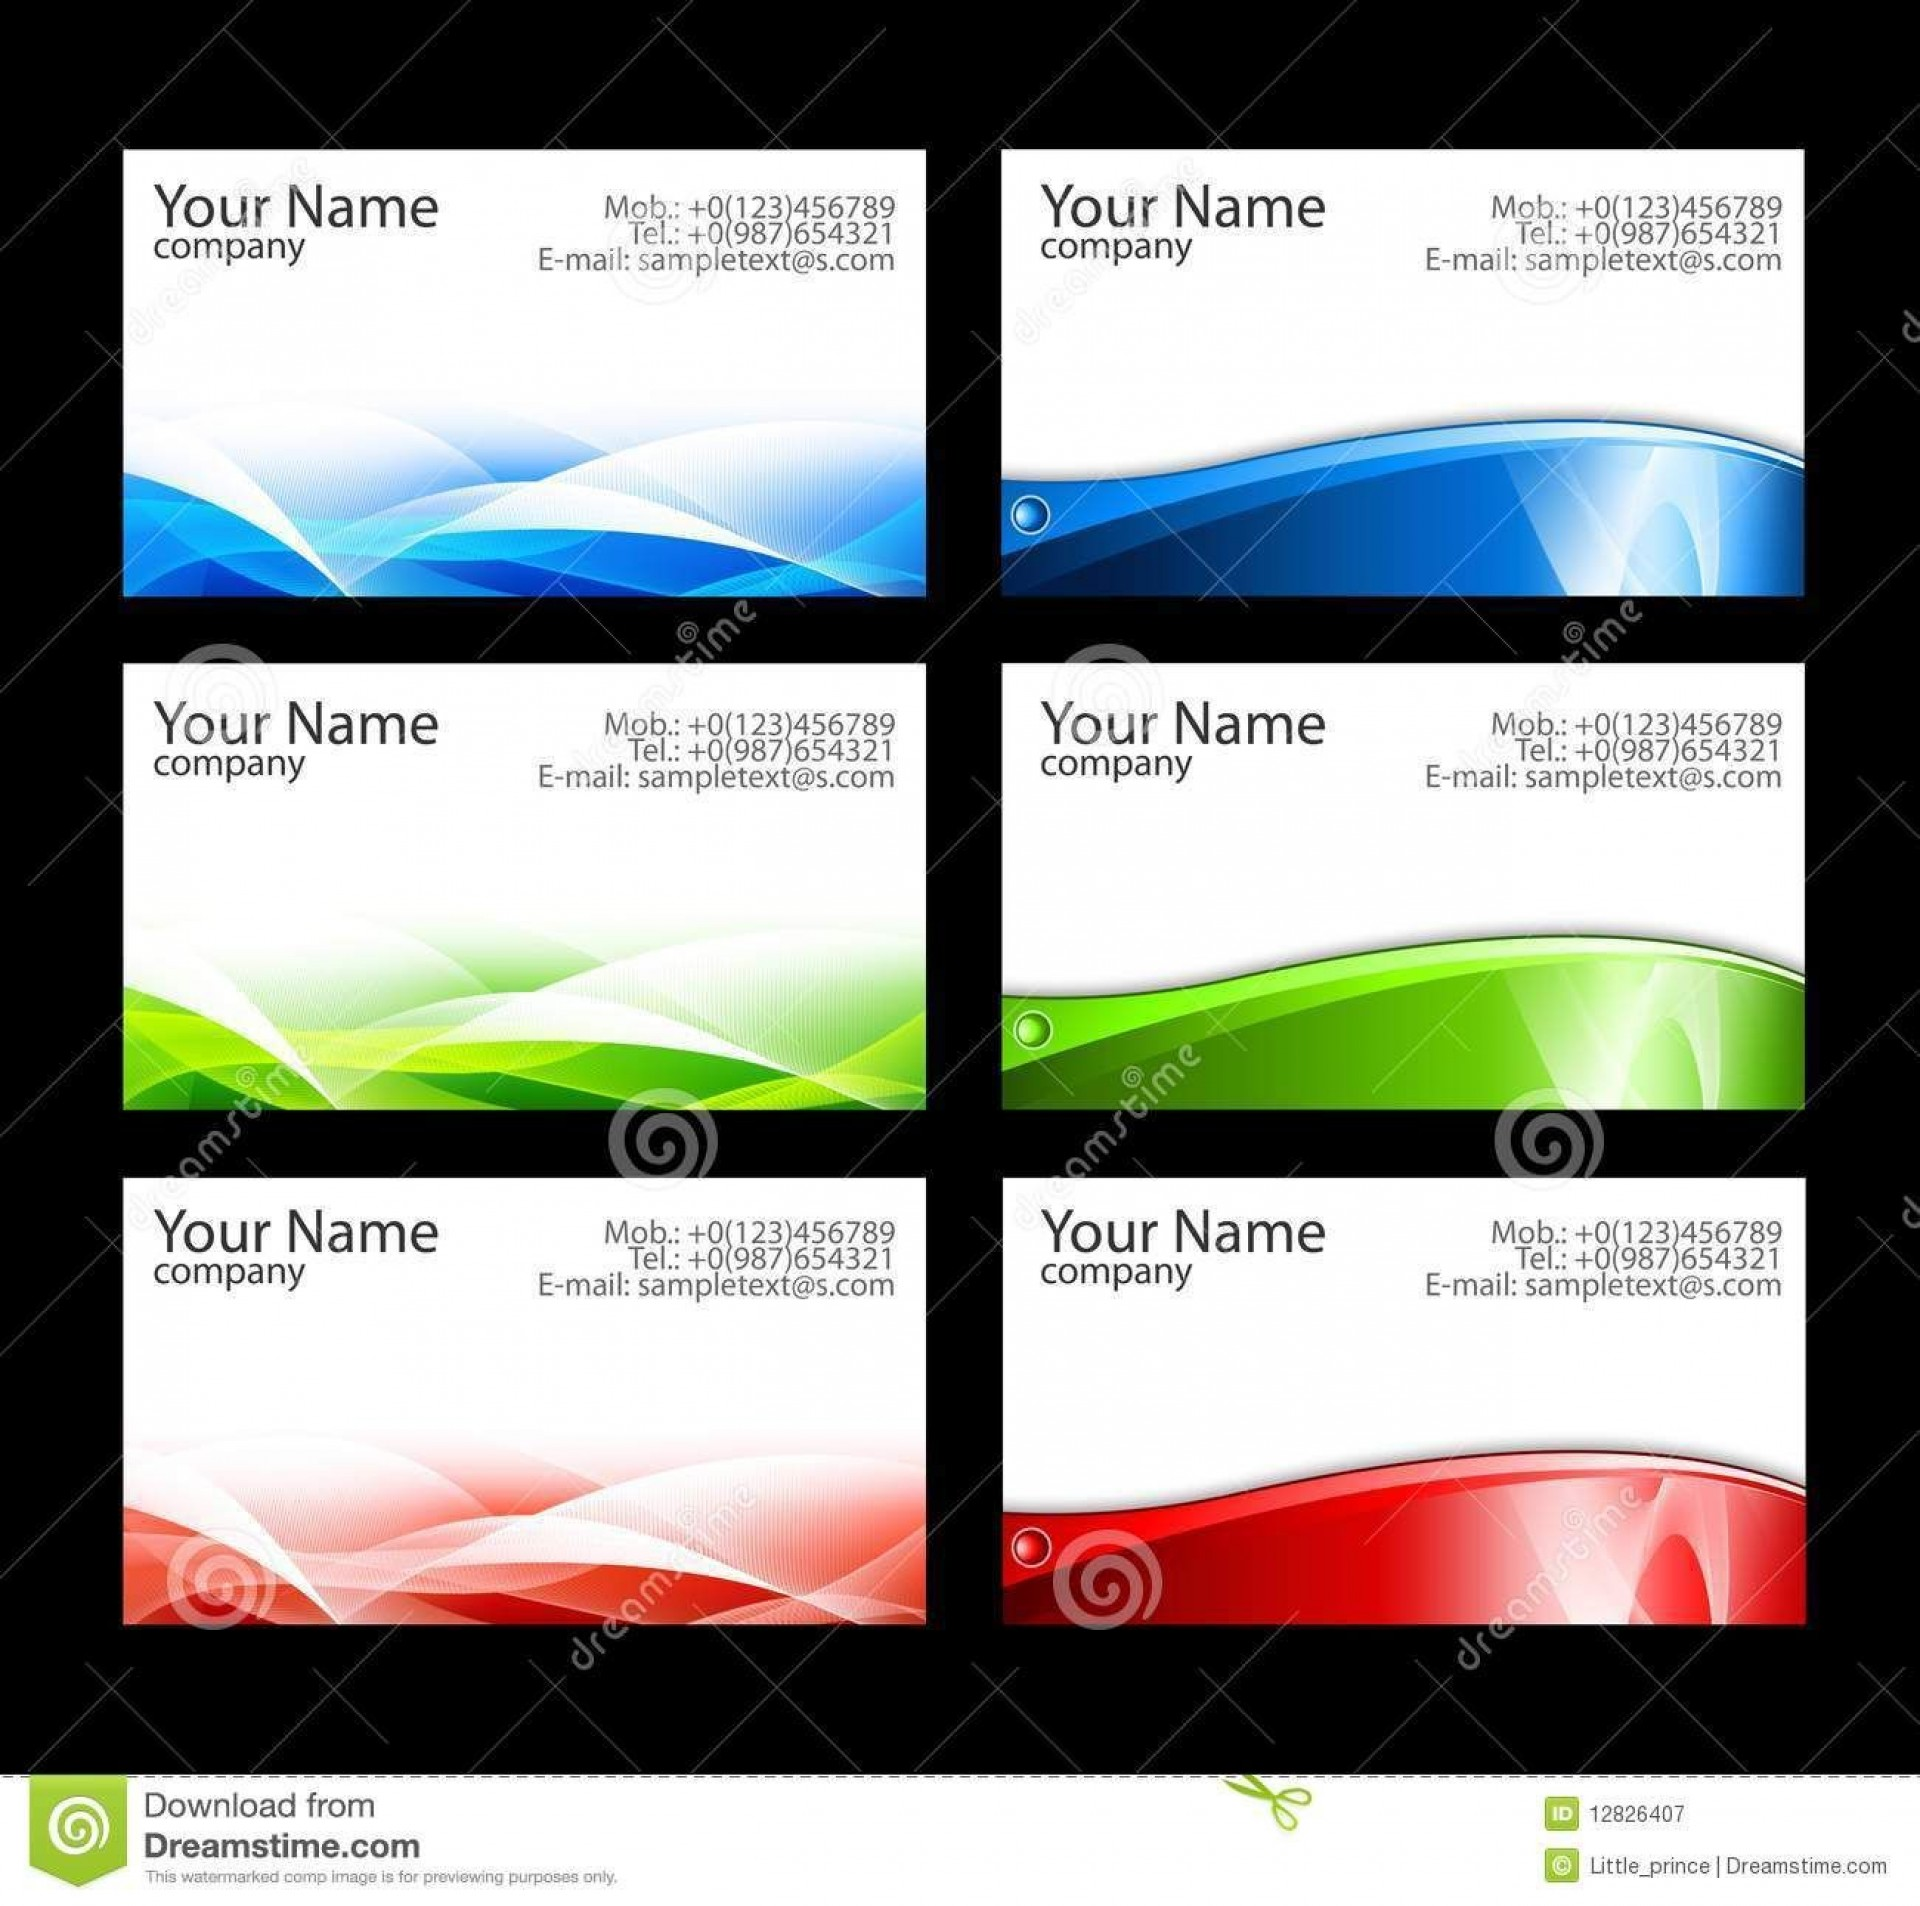 003 Impressive Busines Card Template Microsoft Word Photo  Avery 8 Per Page How To Make A Layout On1920